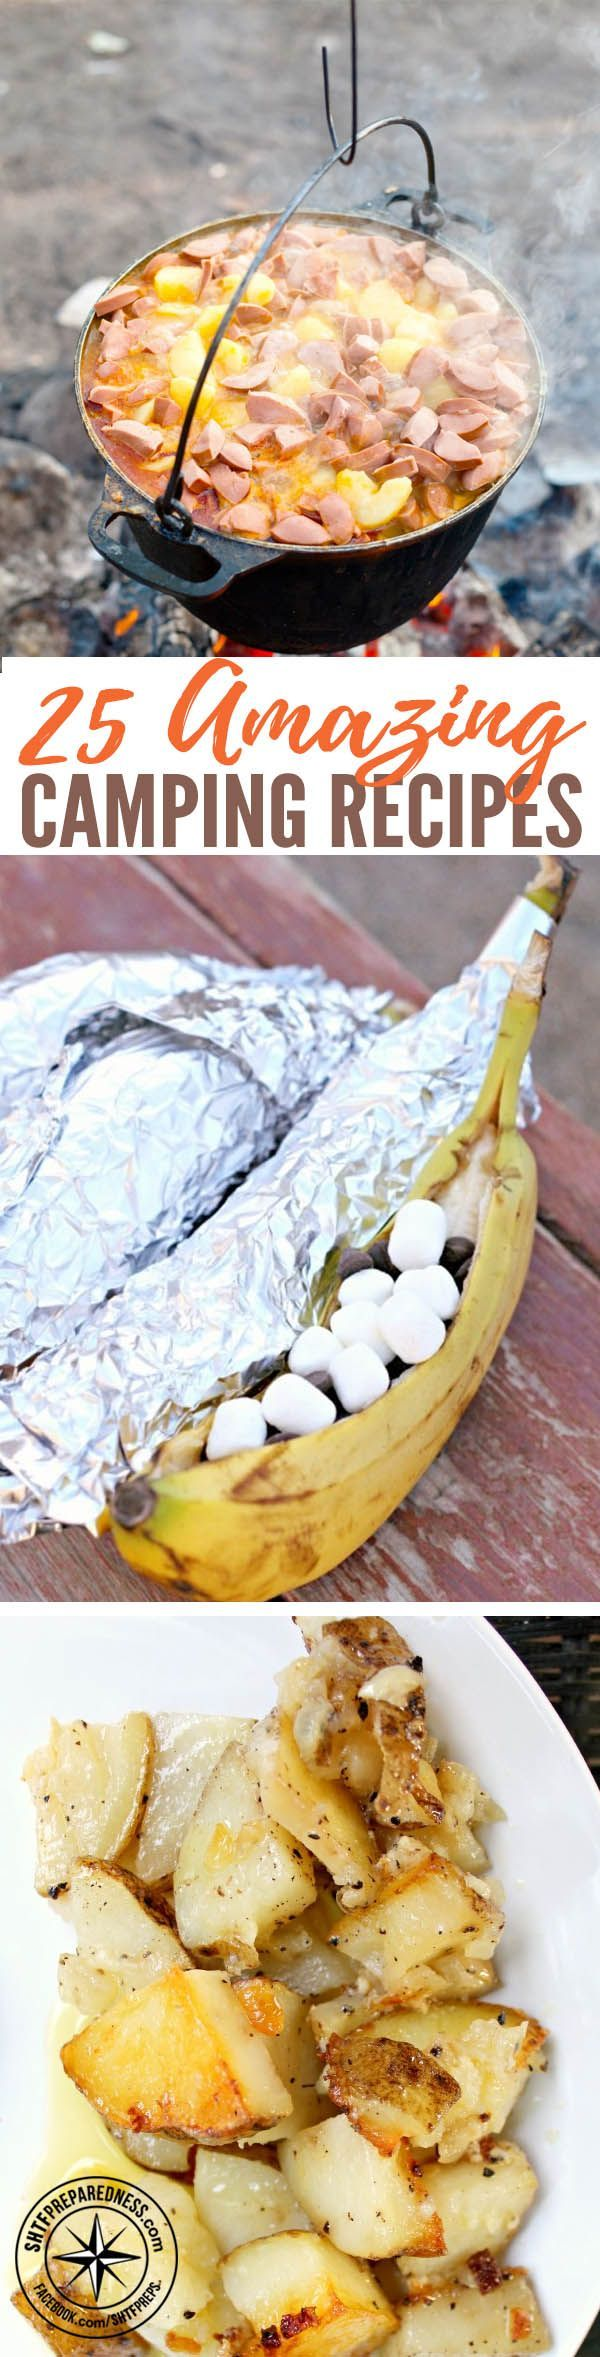 25 Amazing Camping Recipes — If you find yourself off the grid, either by choice or by circumstance, you'll need to cook meals without the usual conveniences found in the home. The easiest solution can be to open a can and heat something over a fire, but that can get old when you have a family to feed.